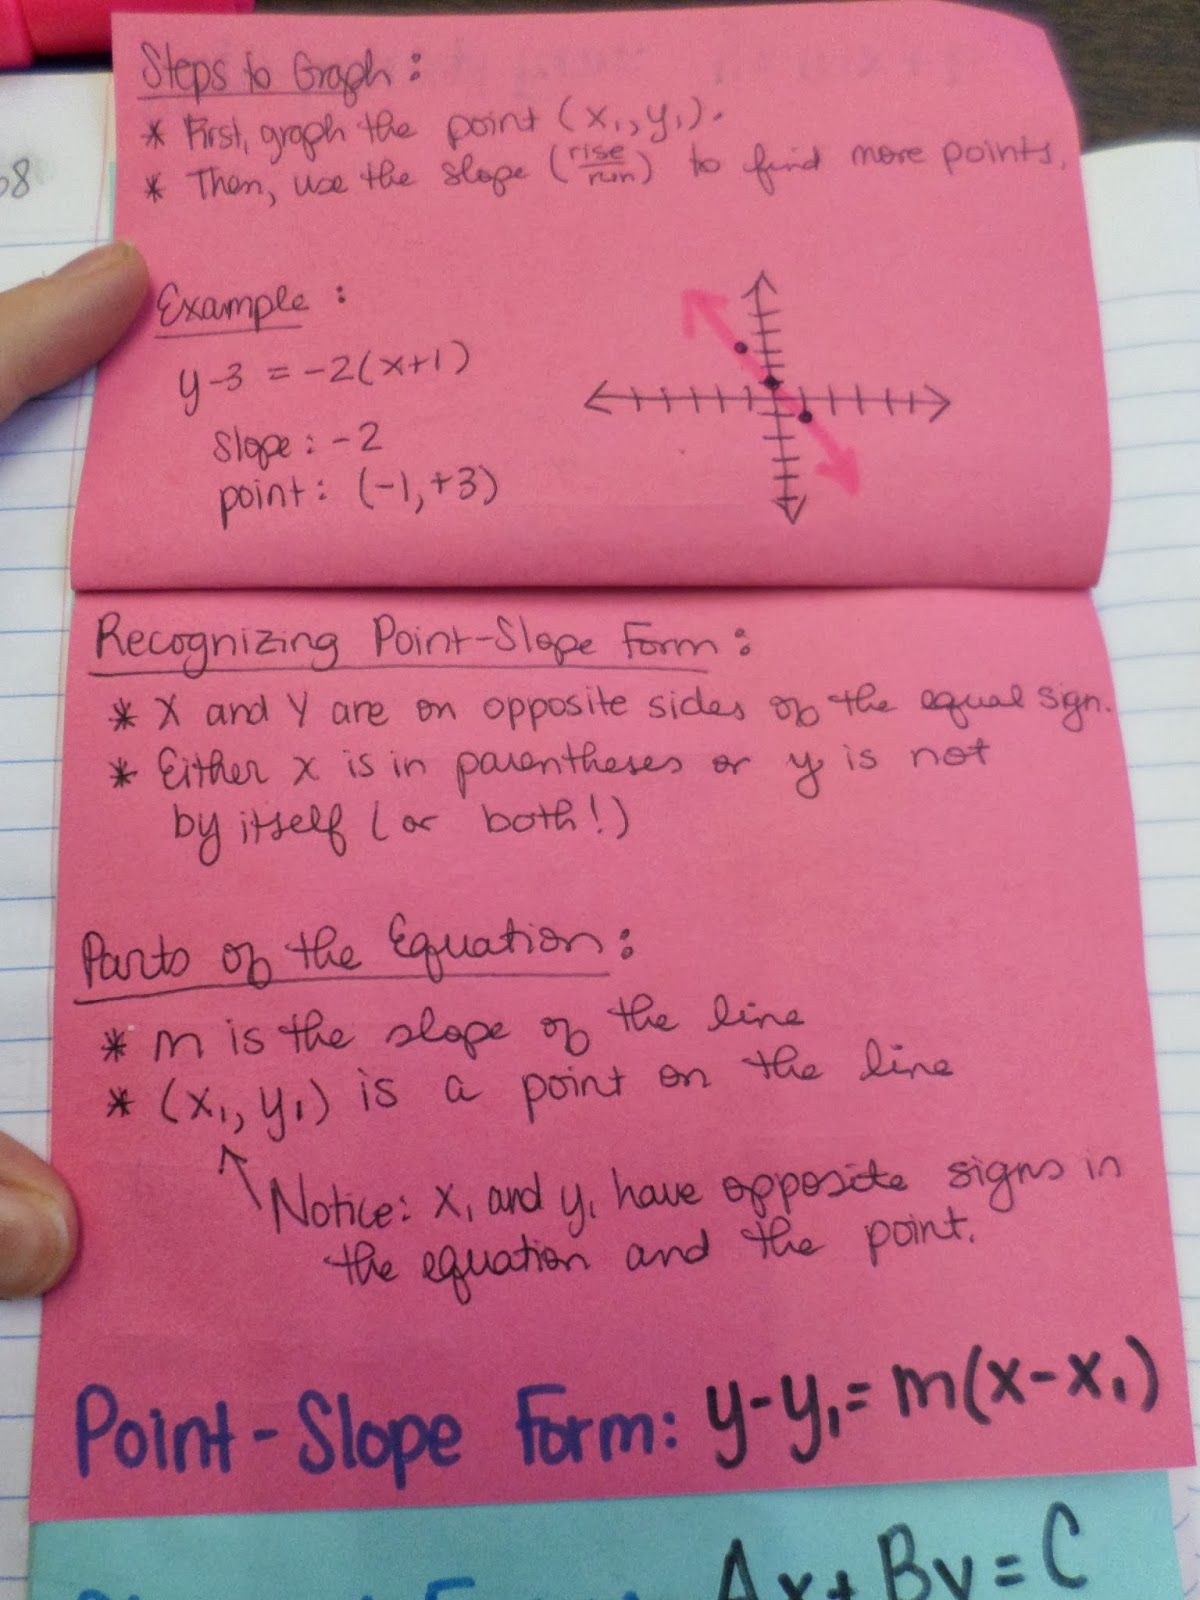 Point Slope Form Notes